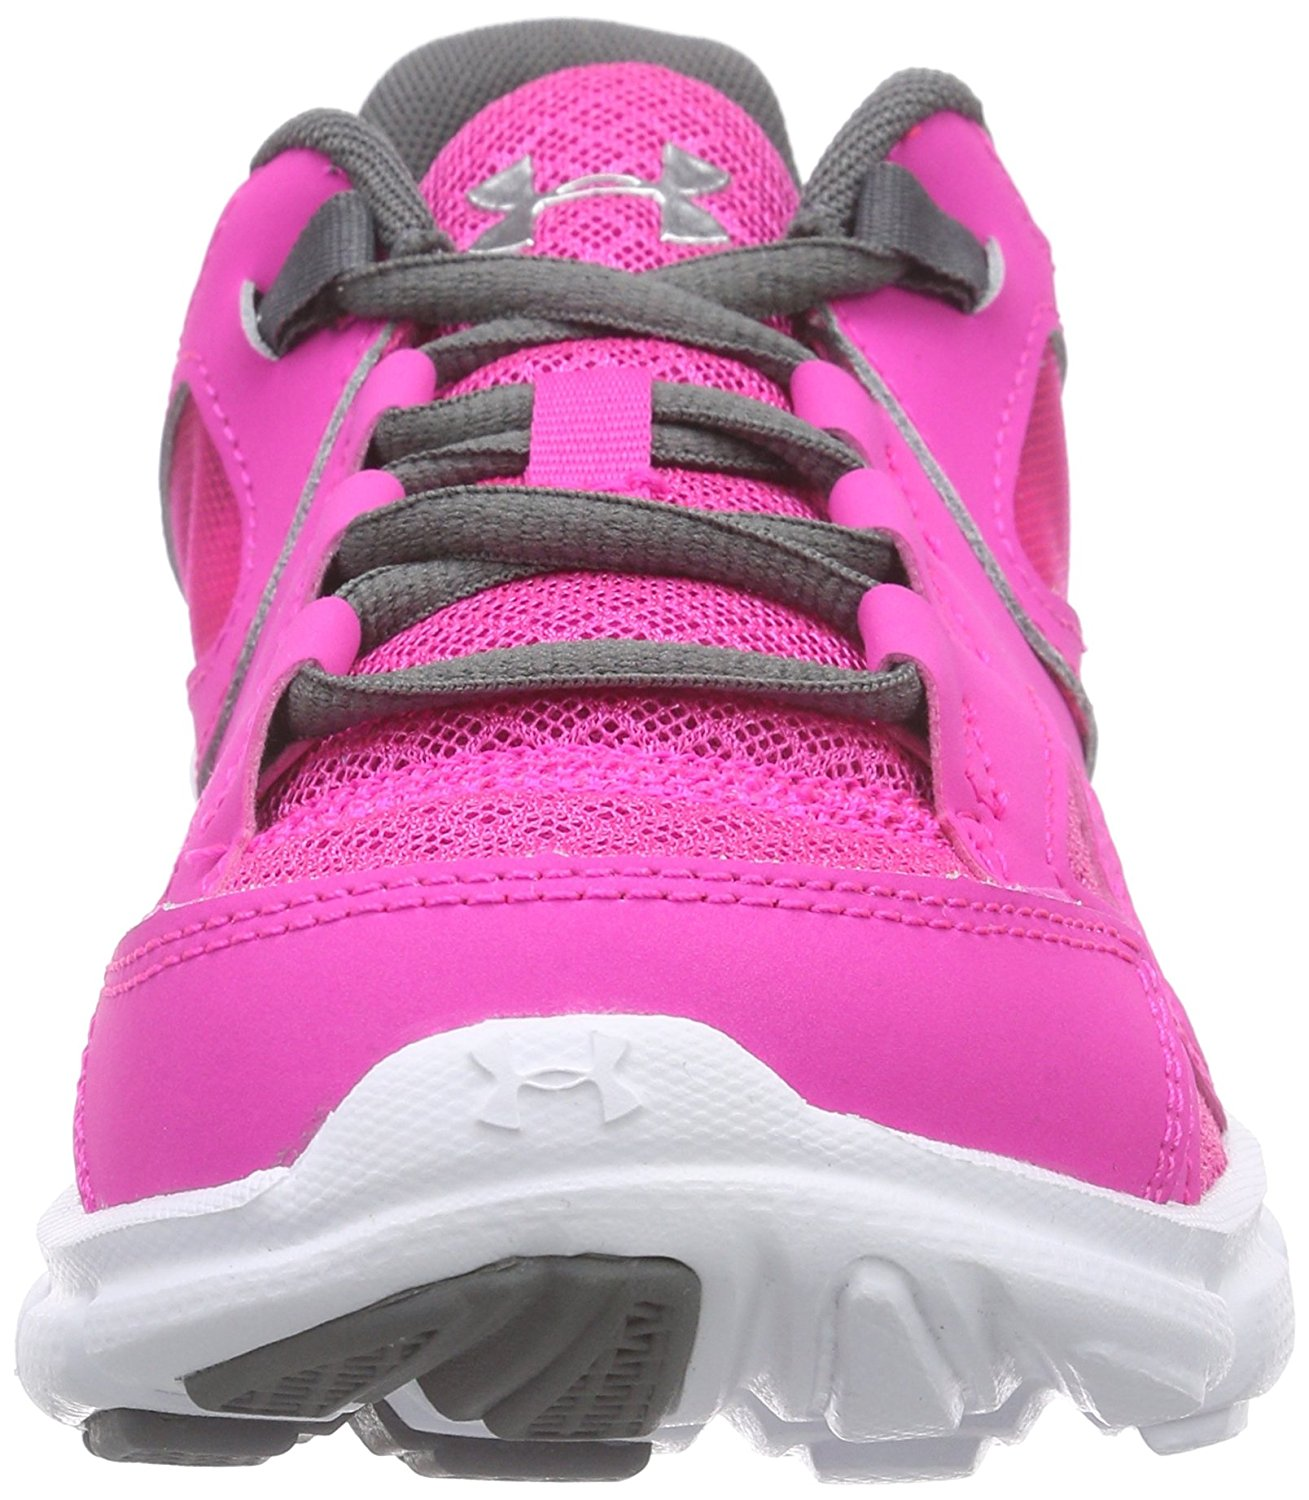 low cost ed393 2c0e3 Under armour ua w thrill women's running shoes pink rebel sports & outdoor  road Size 36,5 Eur